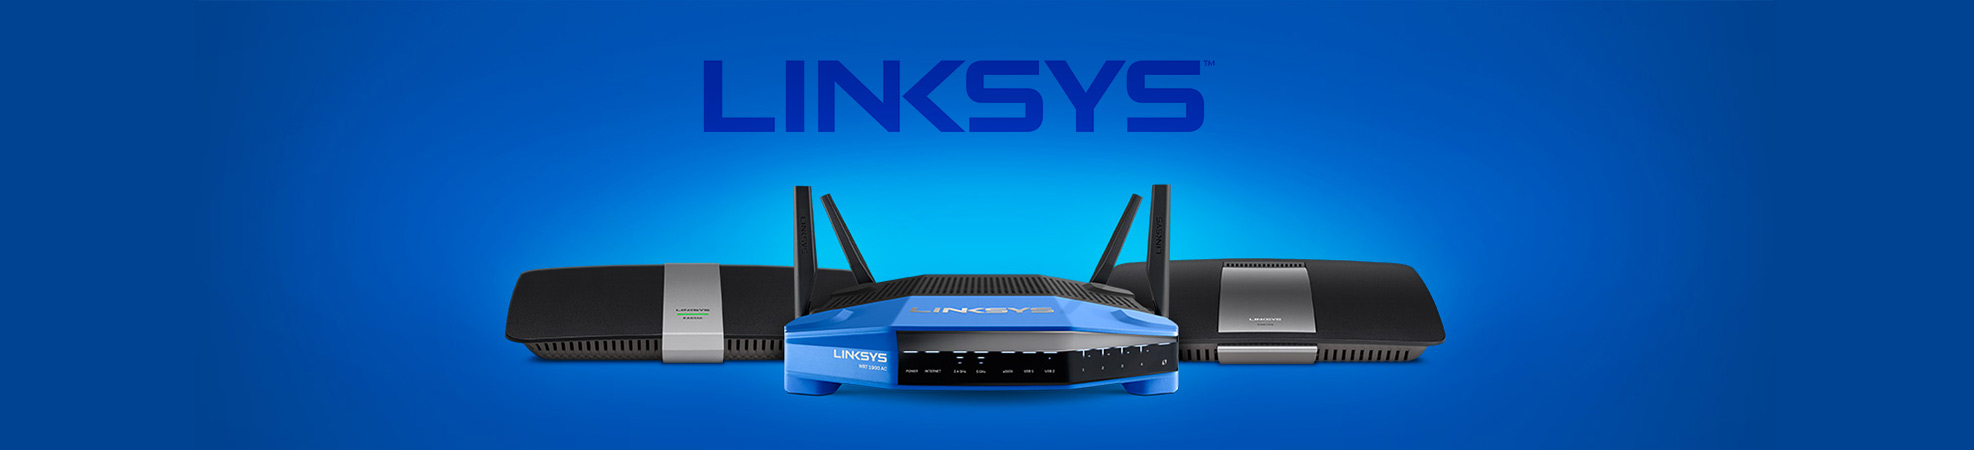 linksys-banner-top